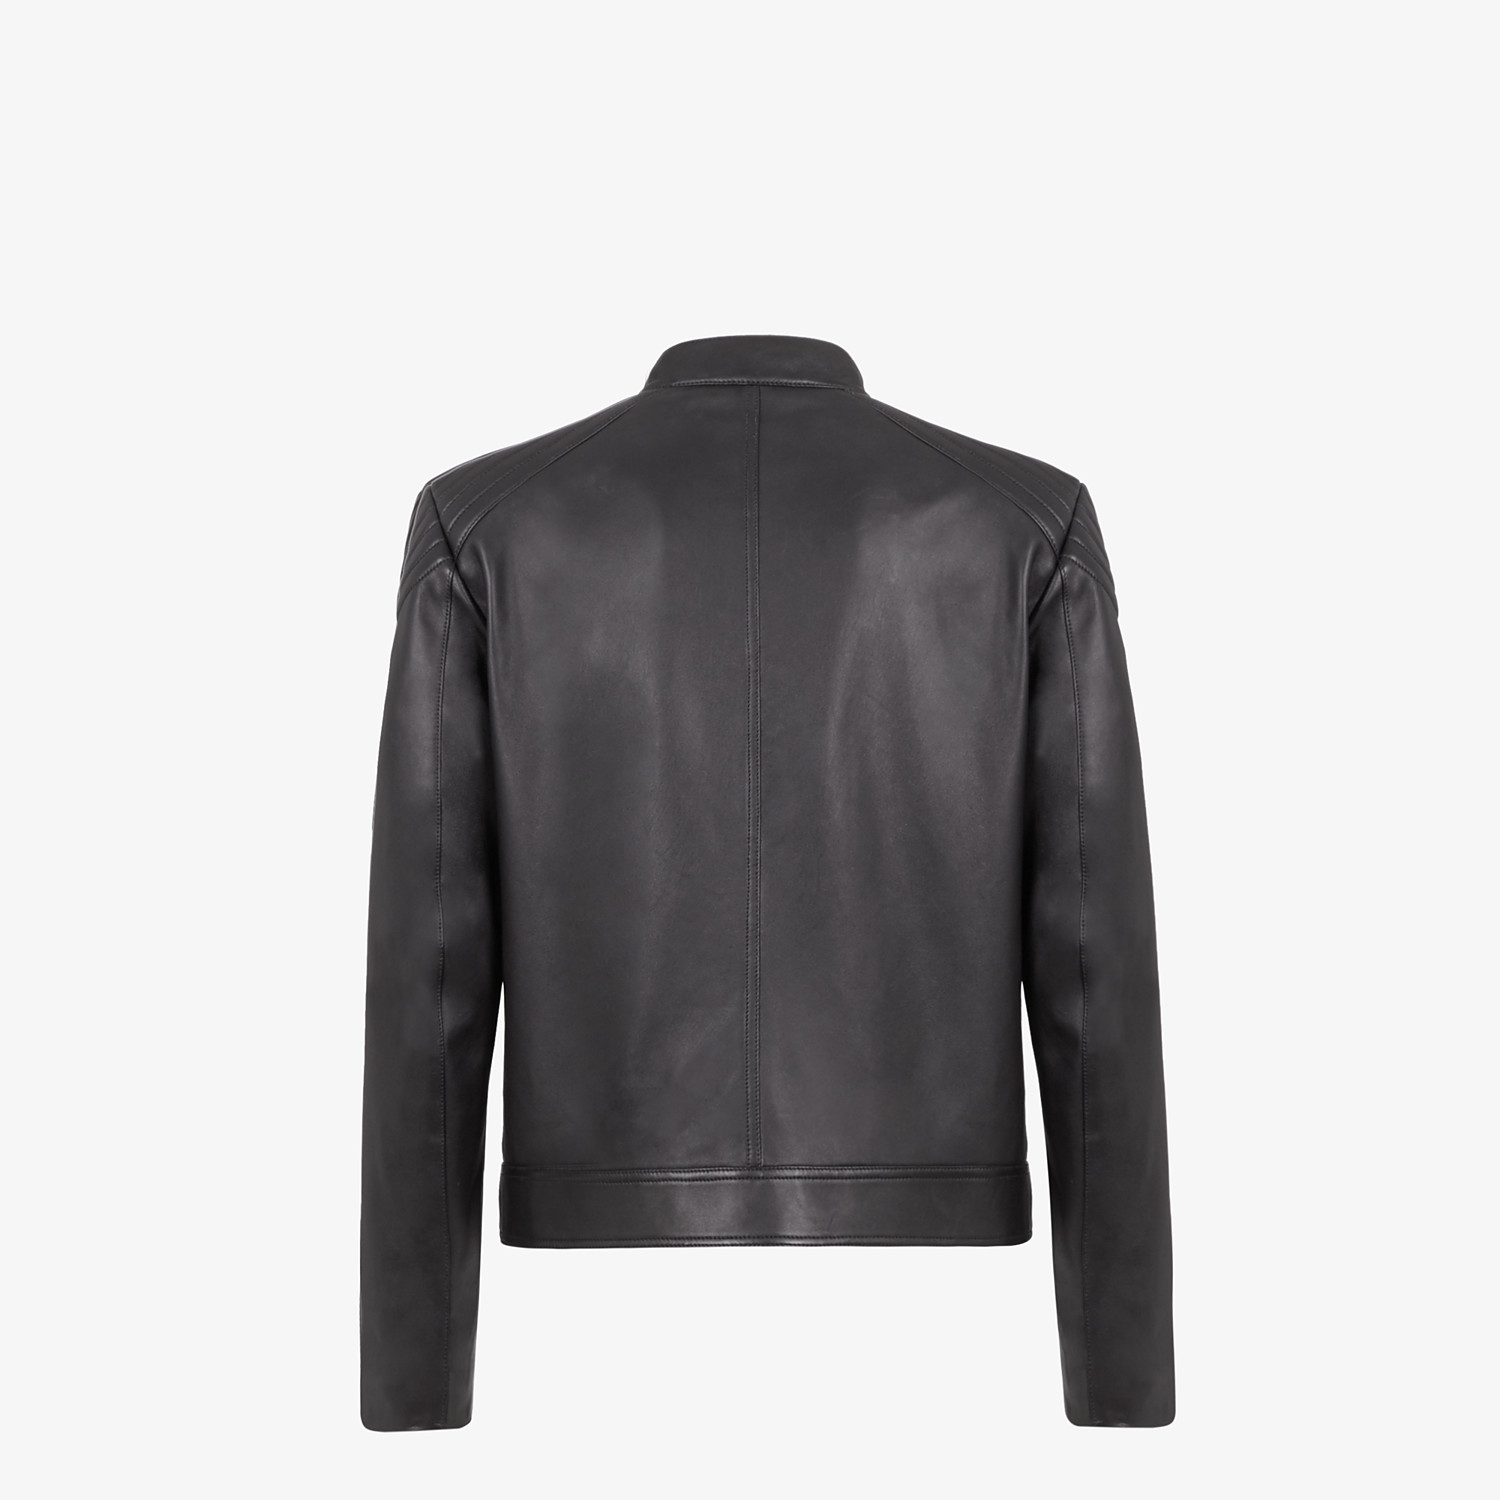 FENDI BIKER JACKET - Black leather jacket - view 2 detail